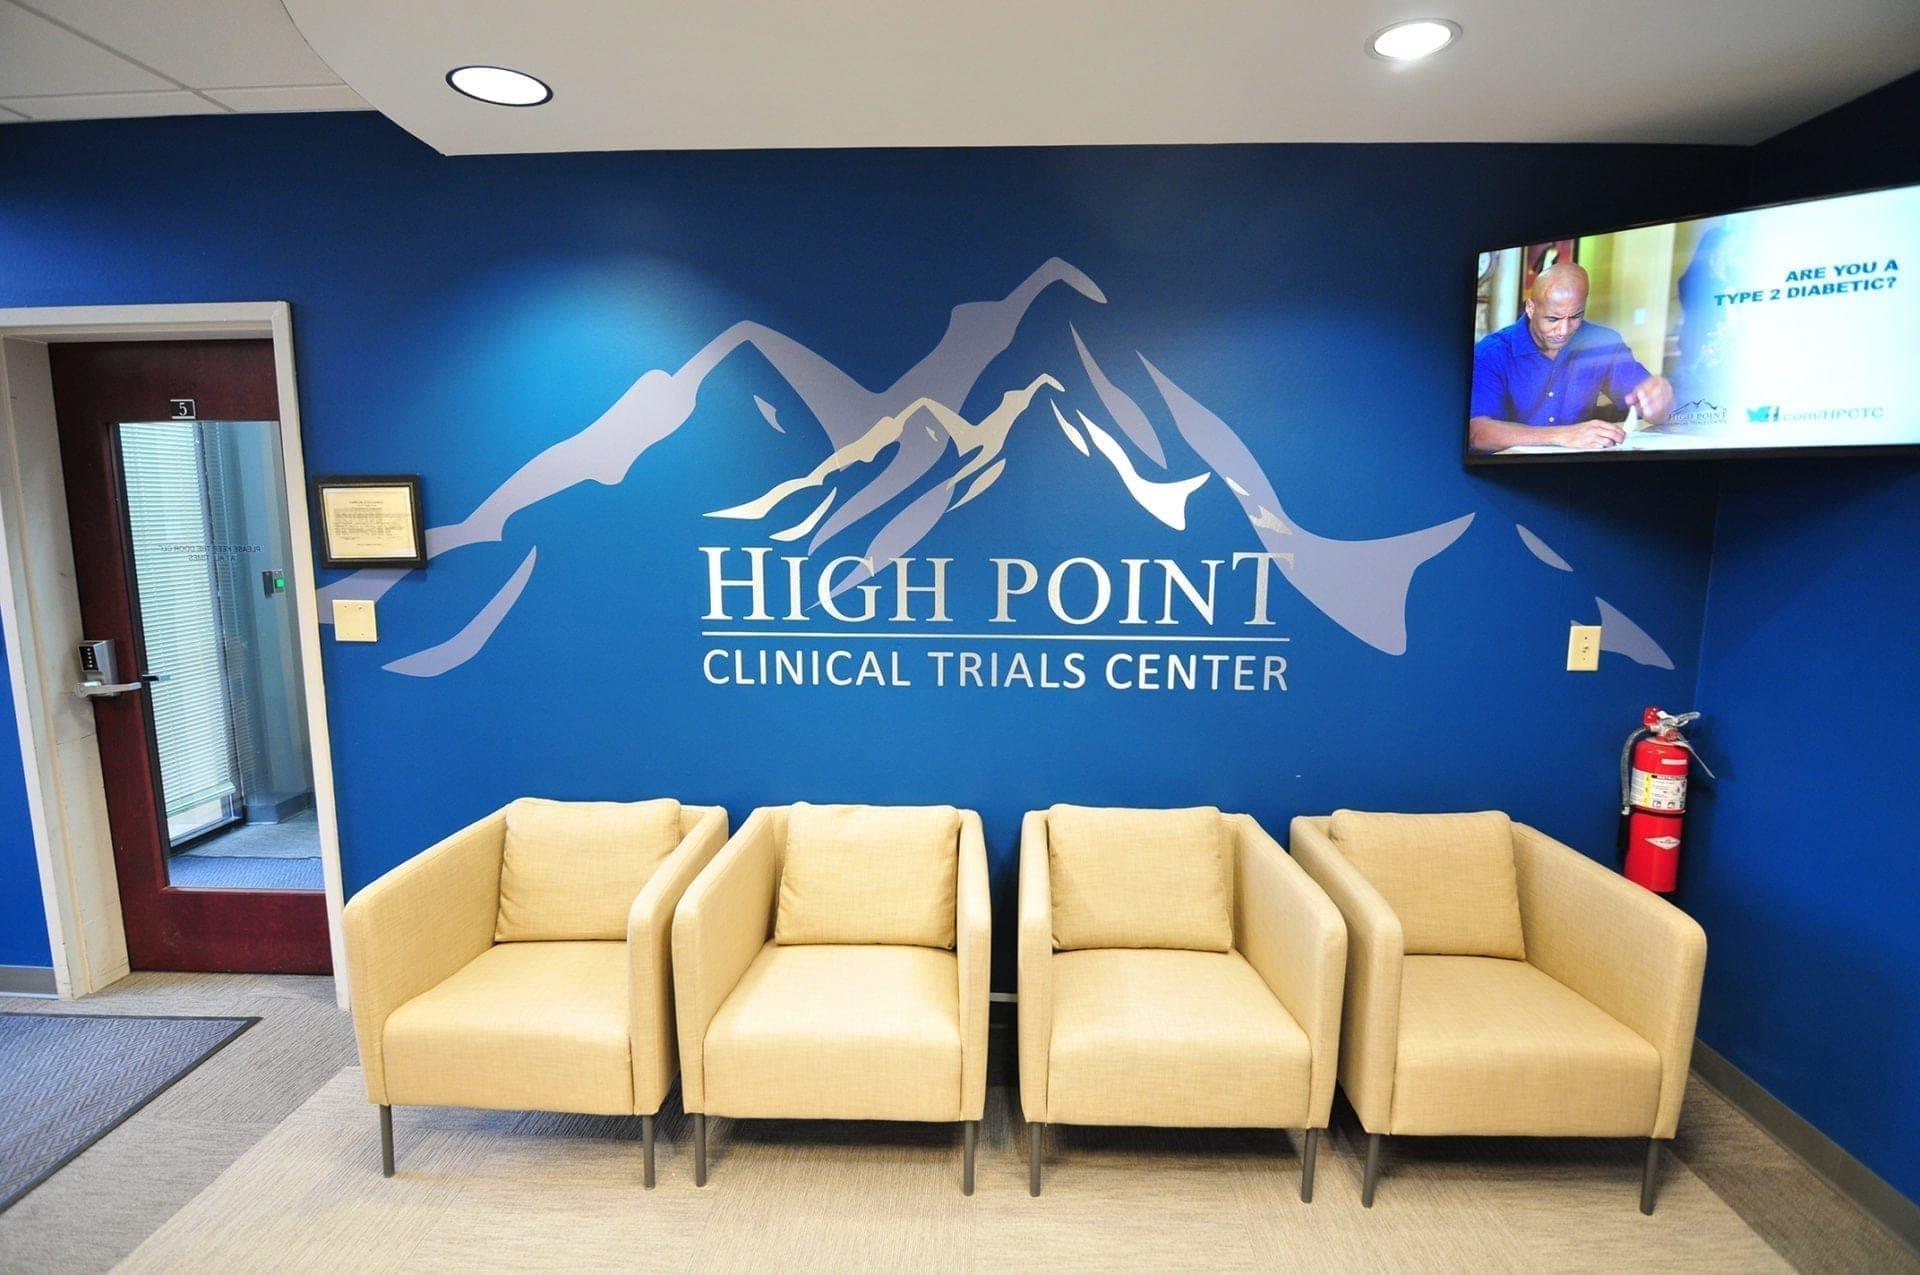 High Point Clinical Trials Center newly rebranded lobby with custom vinyl graphic and corporate furniture